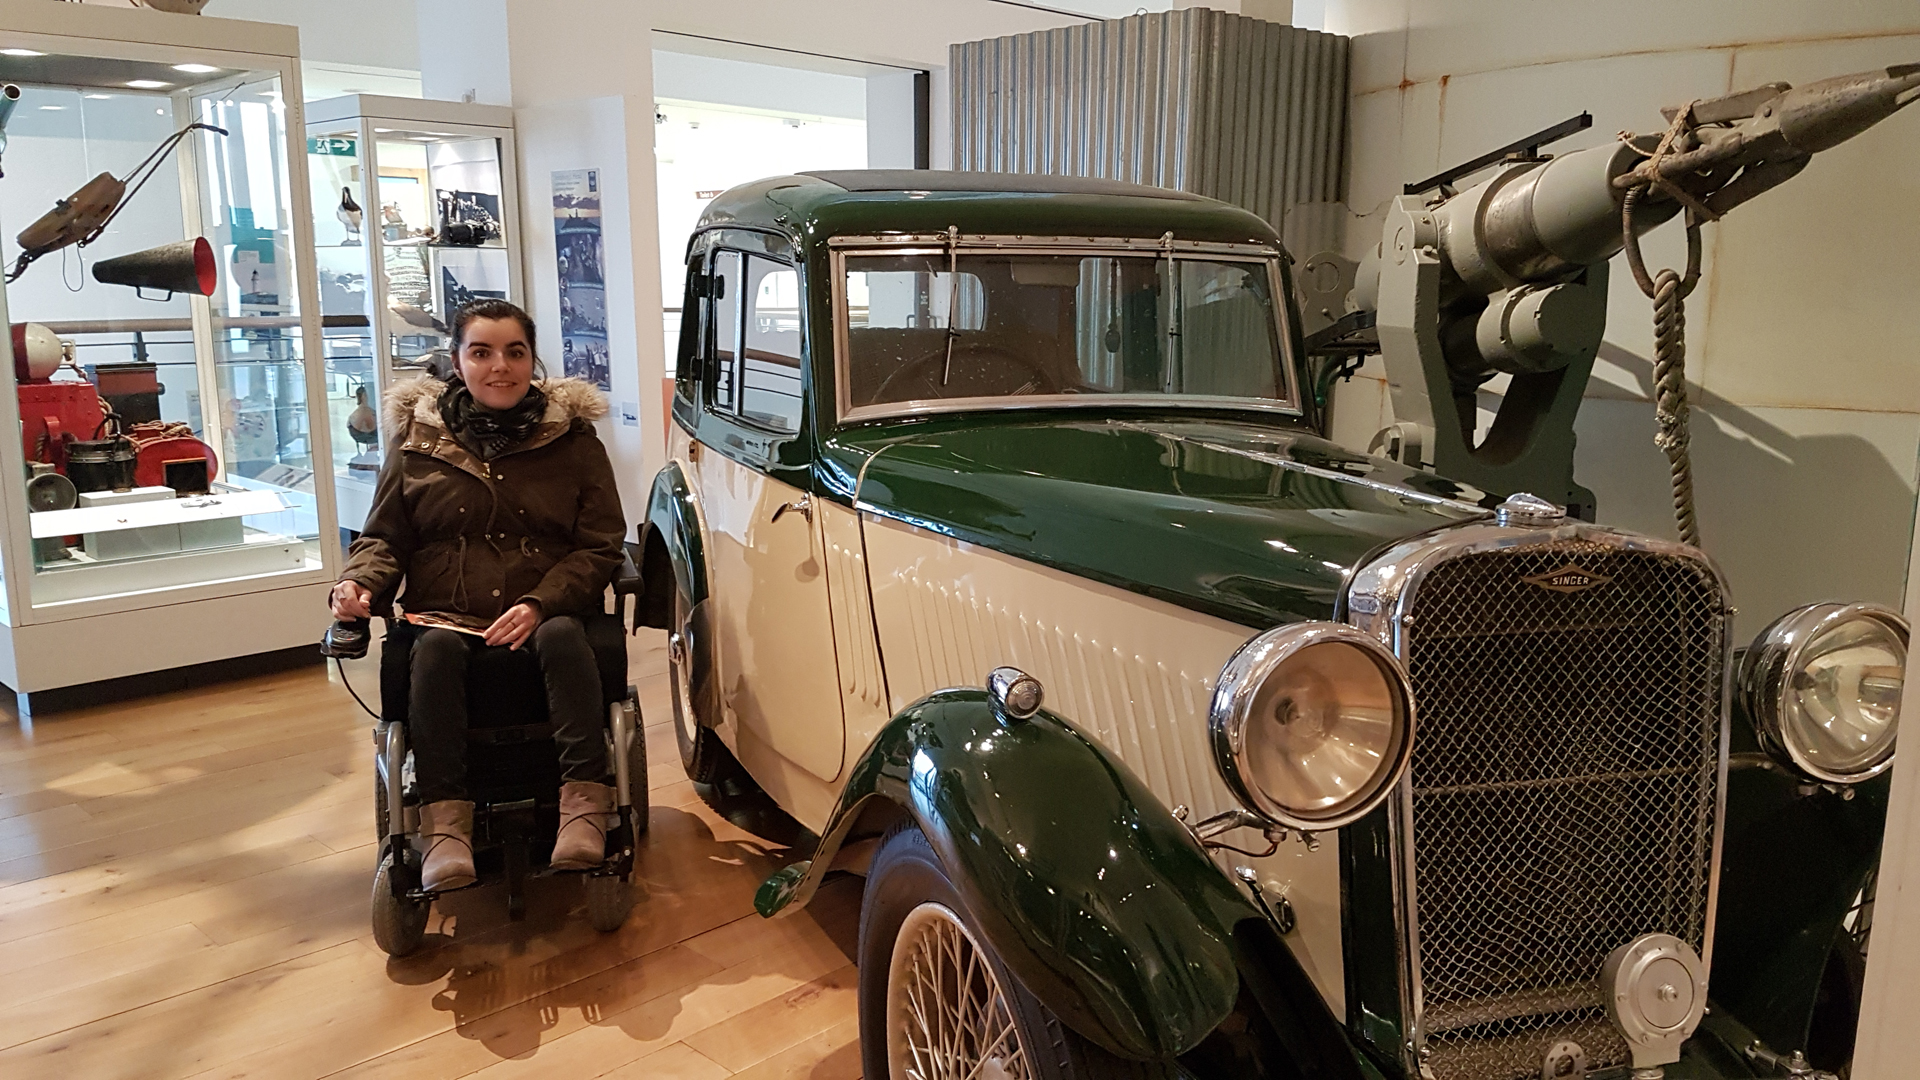 Emma sitting beside a old car at one of the exhibits at Shetland Museum and Archives